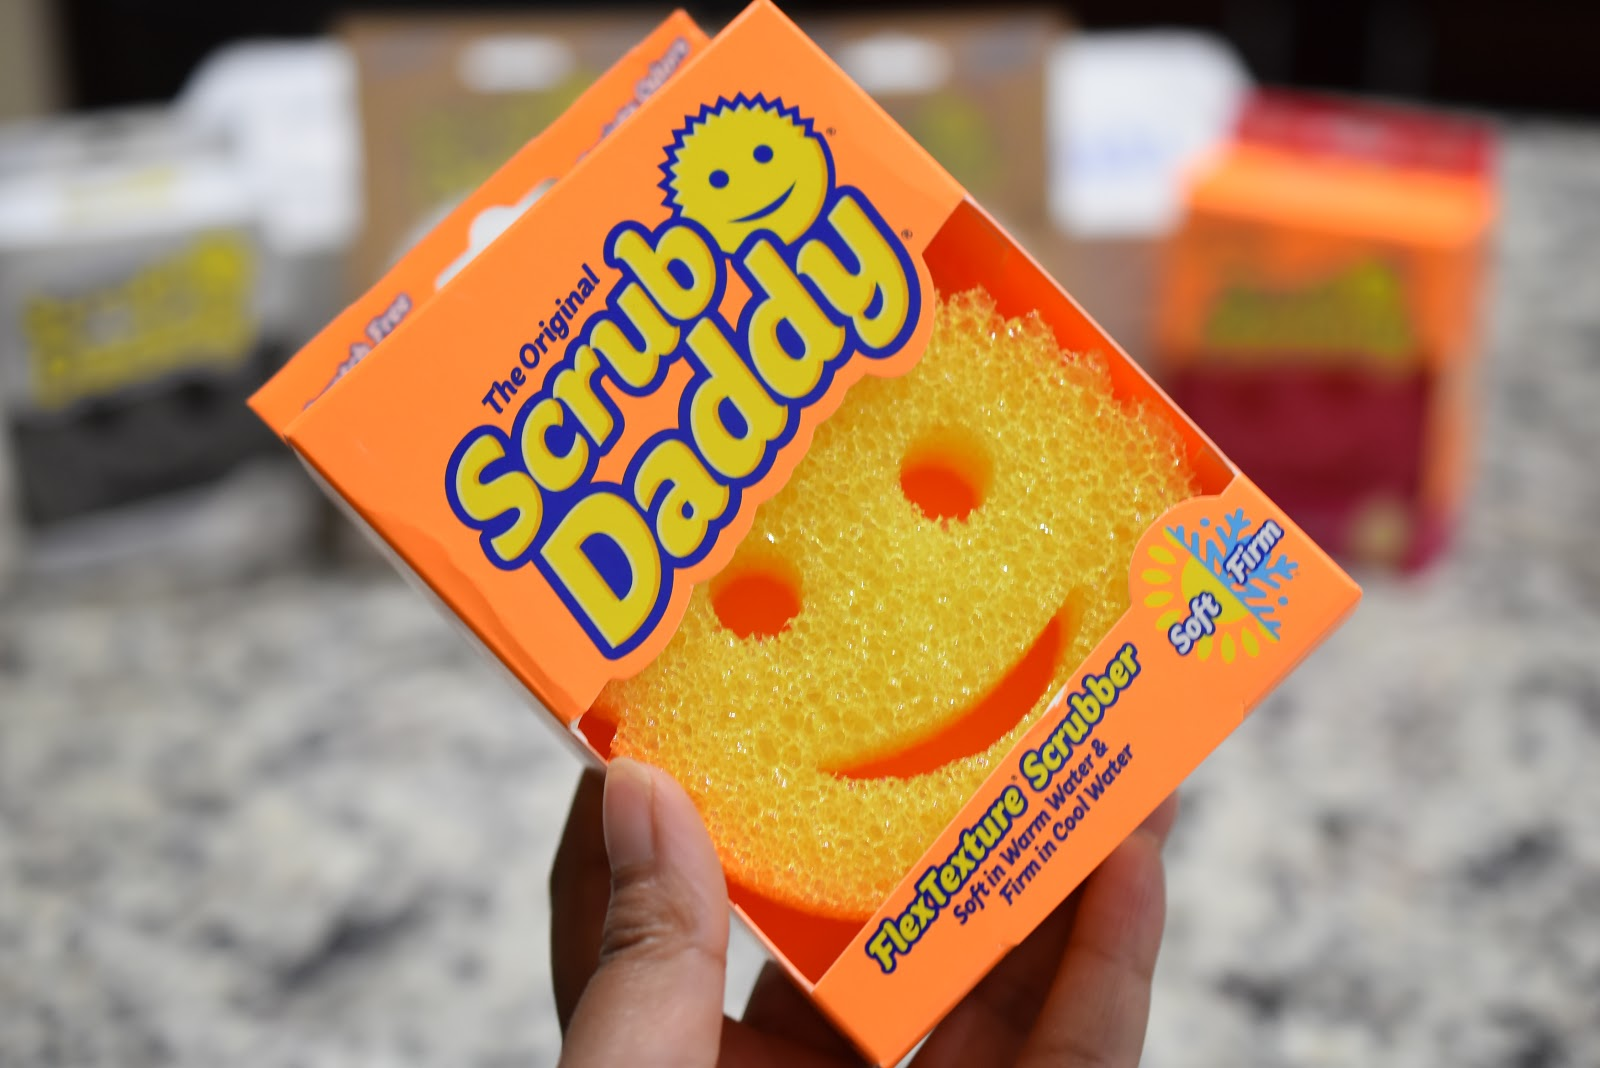 The Original Scrub Daddy Sponge